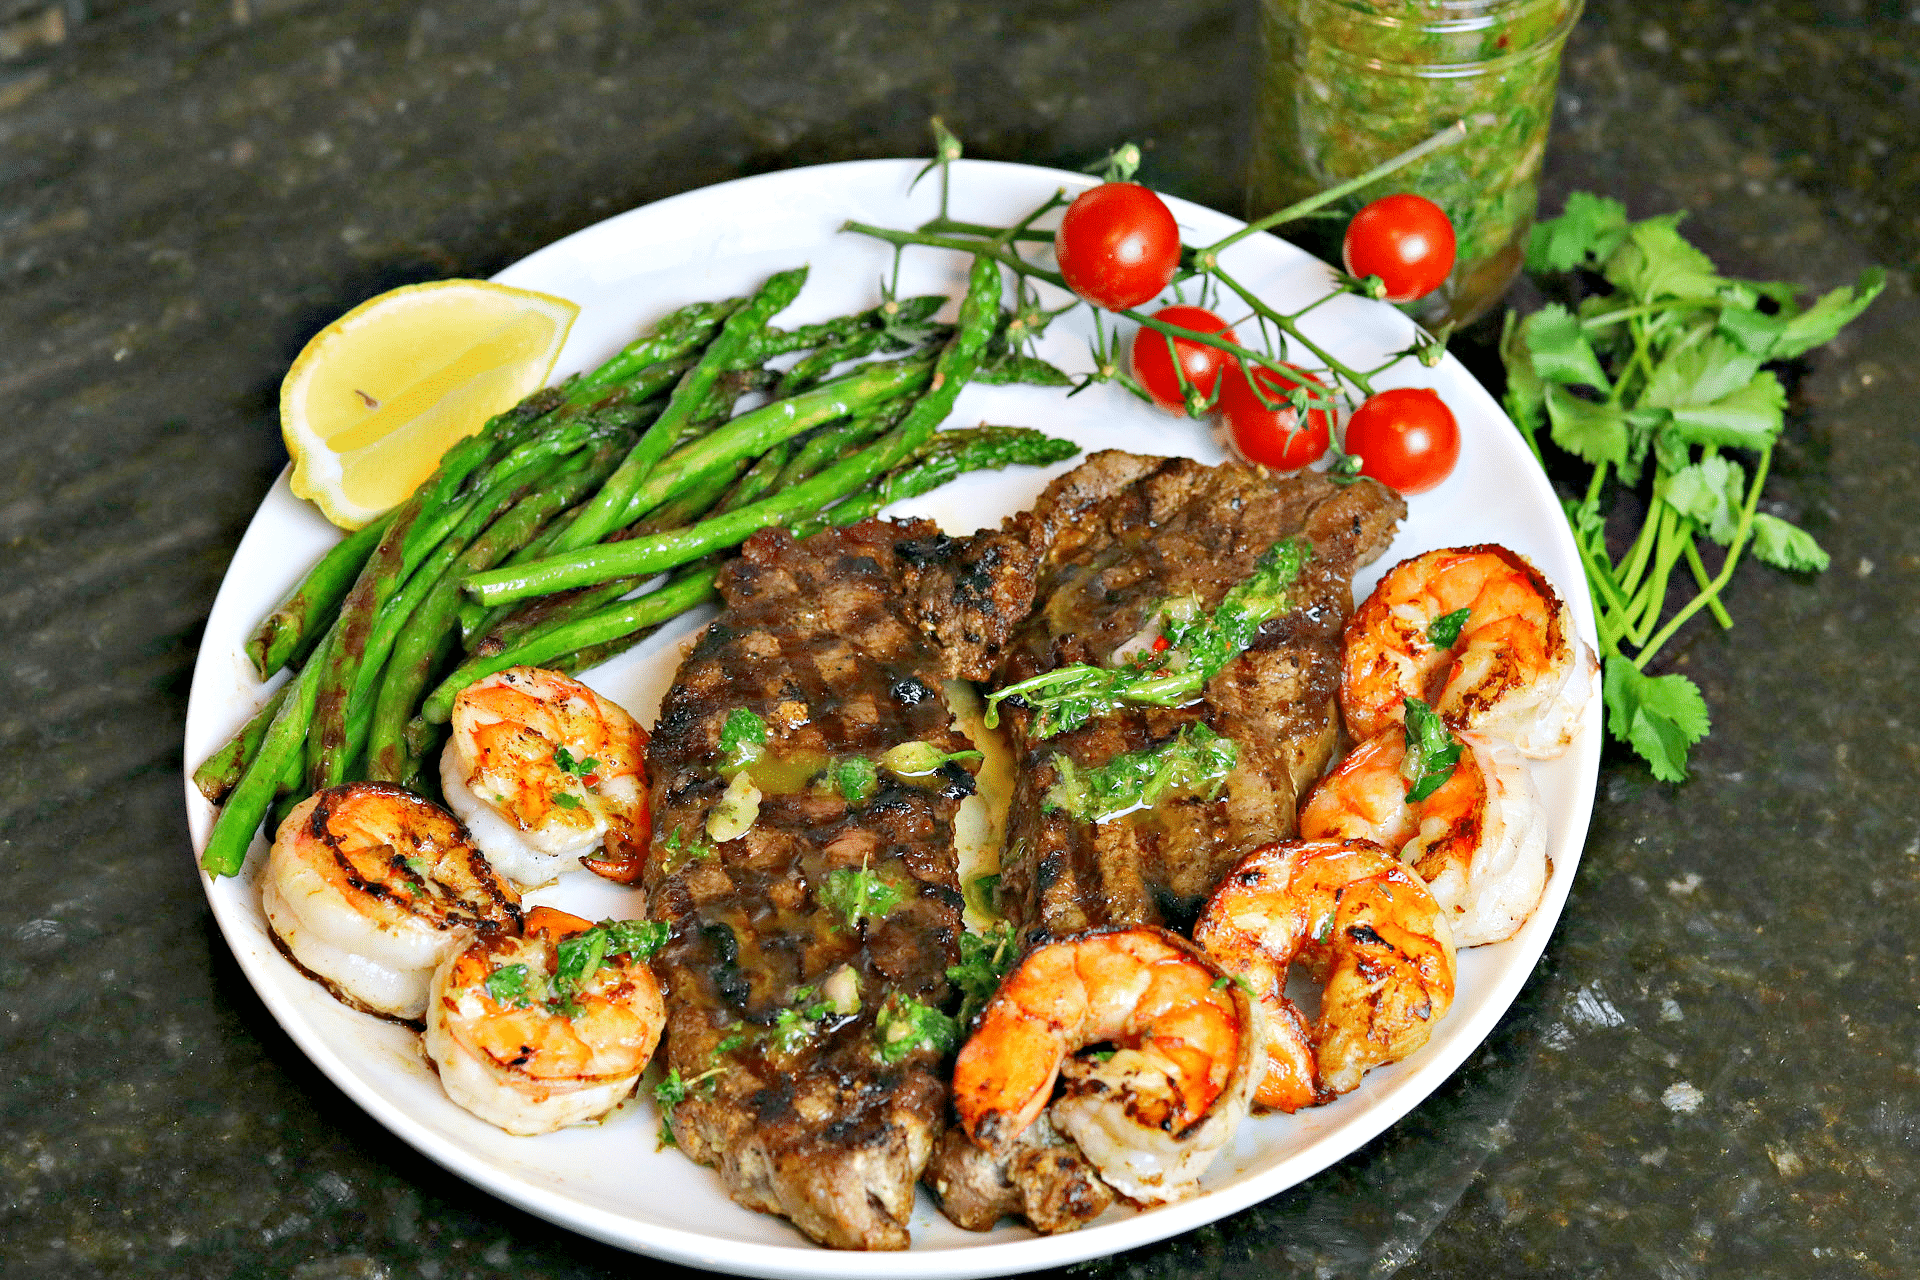 NY Strip Steak with Chimichurri and shrimp on a plate